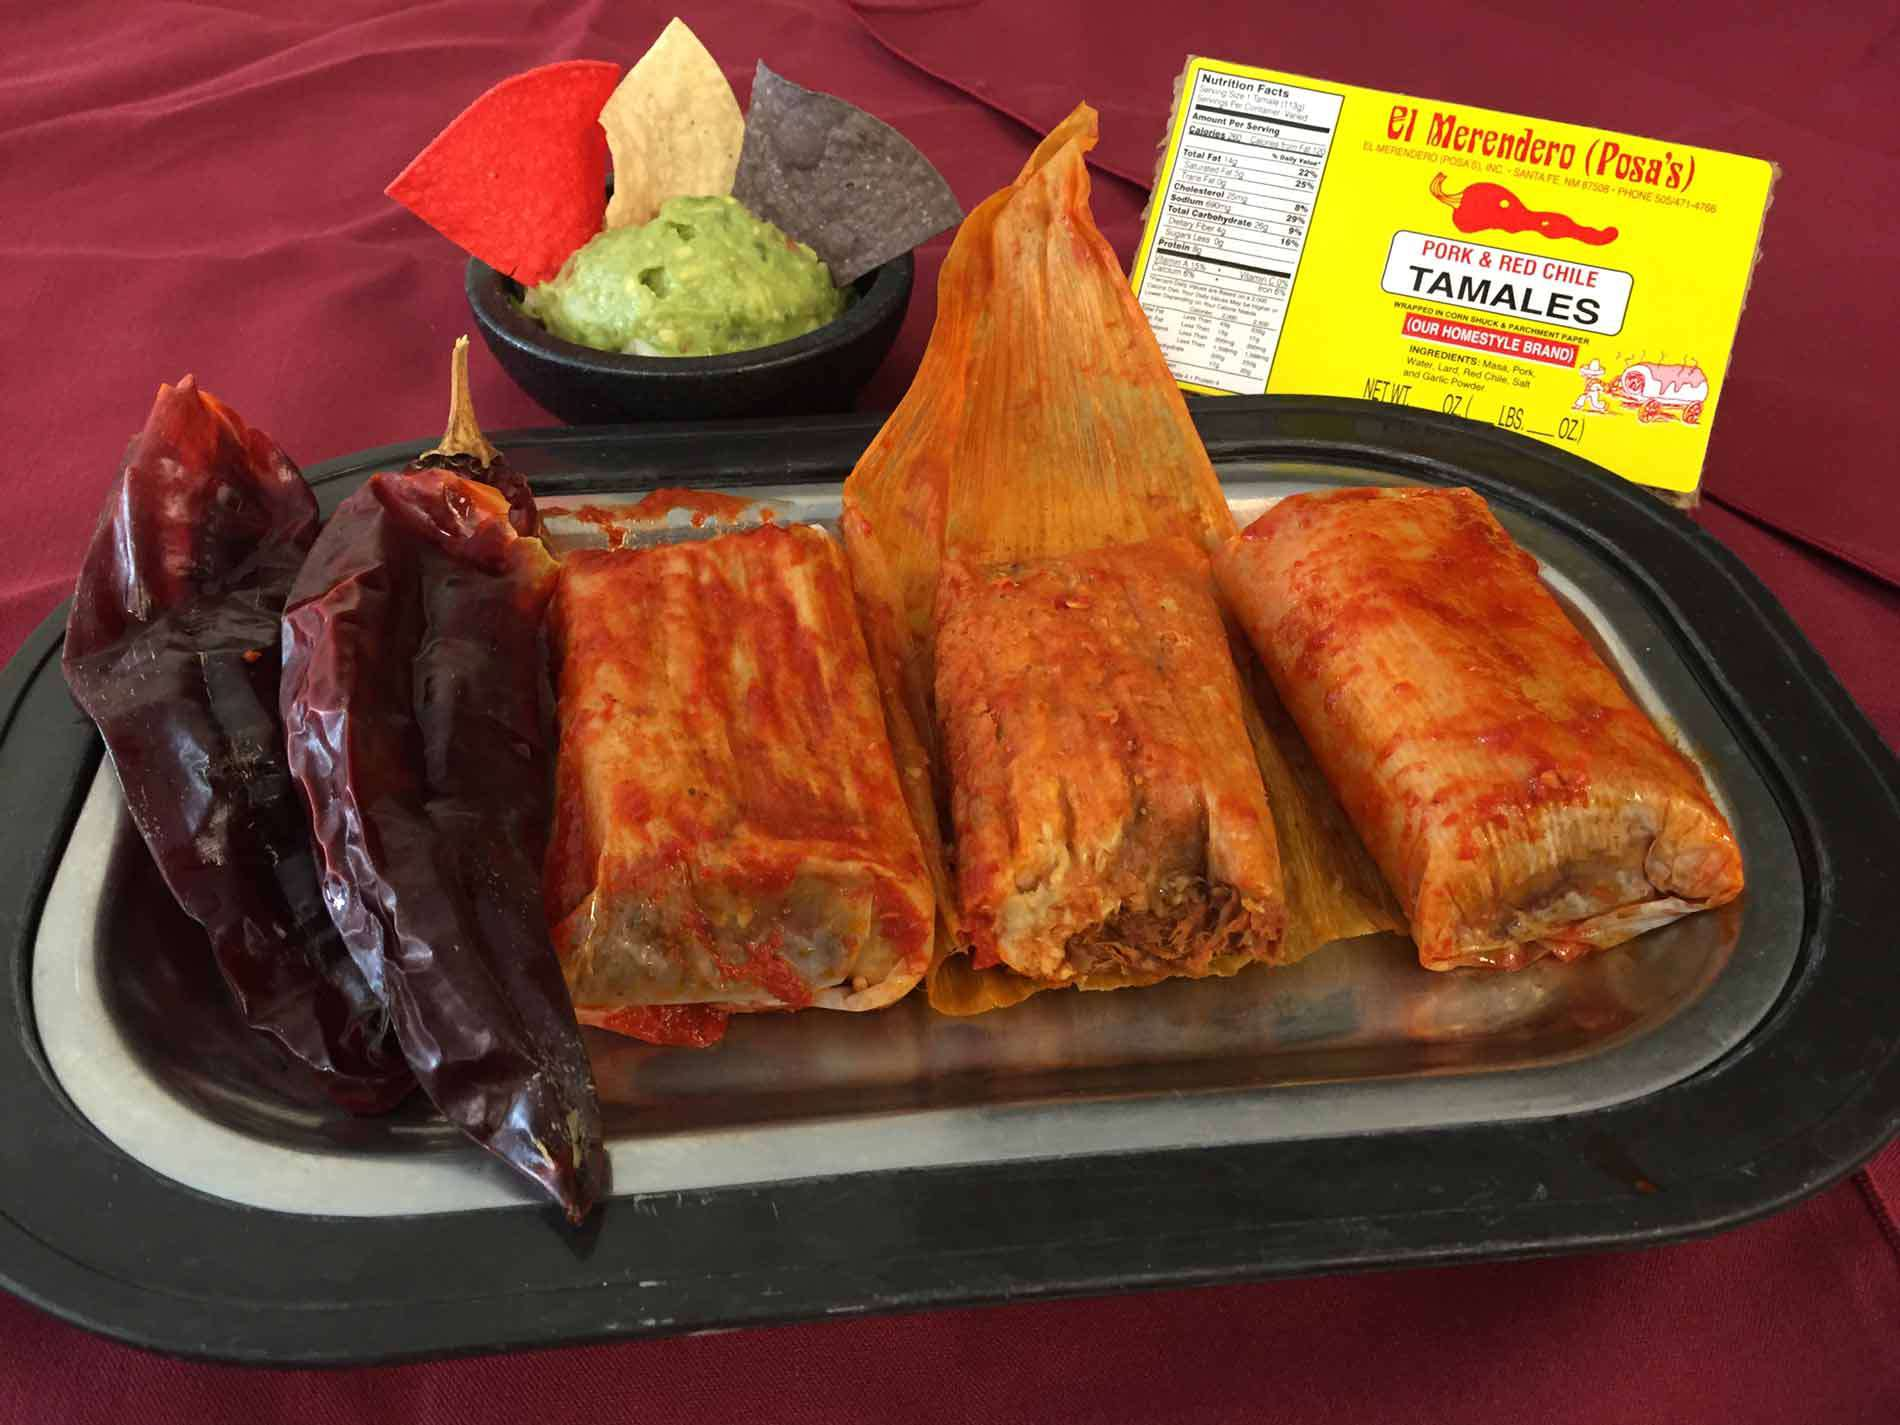 Three tamales and two drived chiles from Posa's El Merendero Tamale Factory & Restaurant